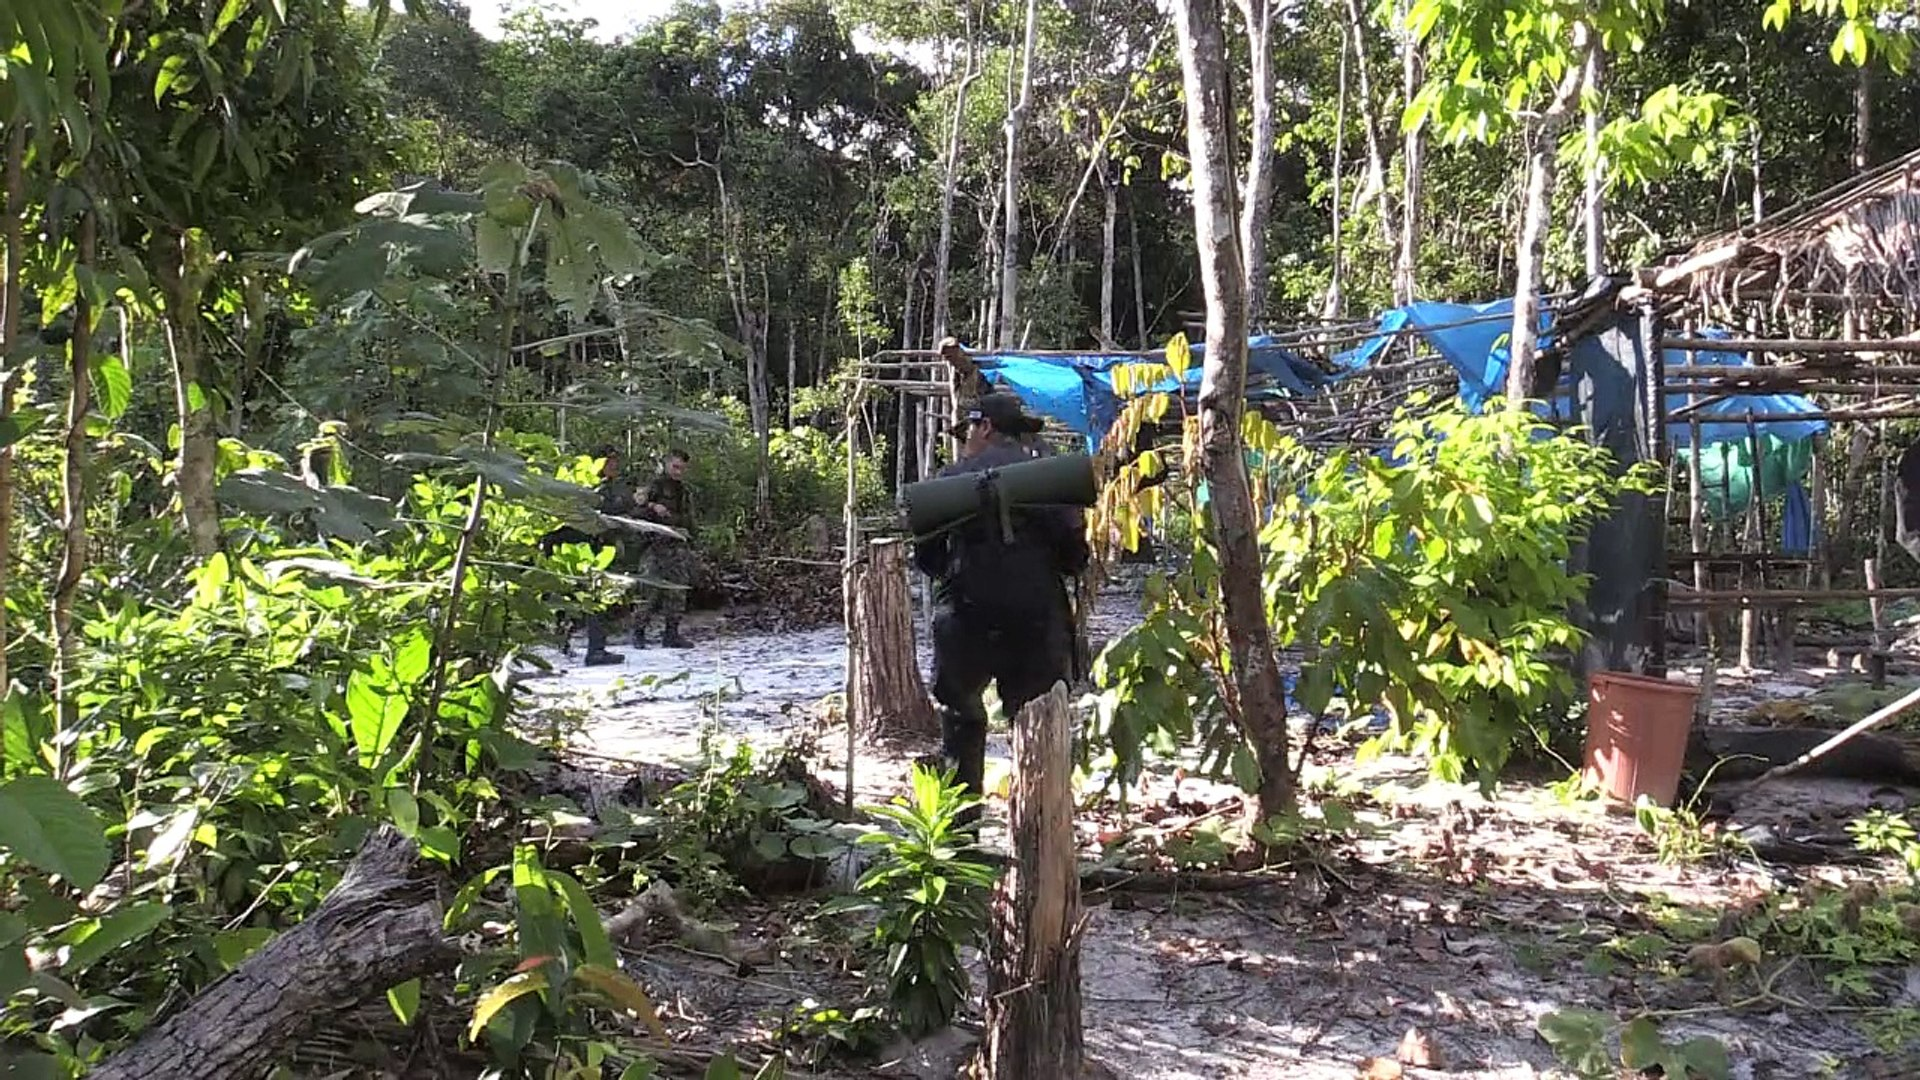 'Beaches' from illegal mining scar Colombia's Amazon